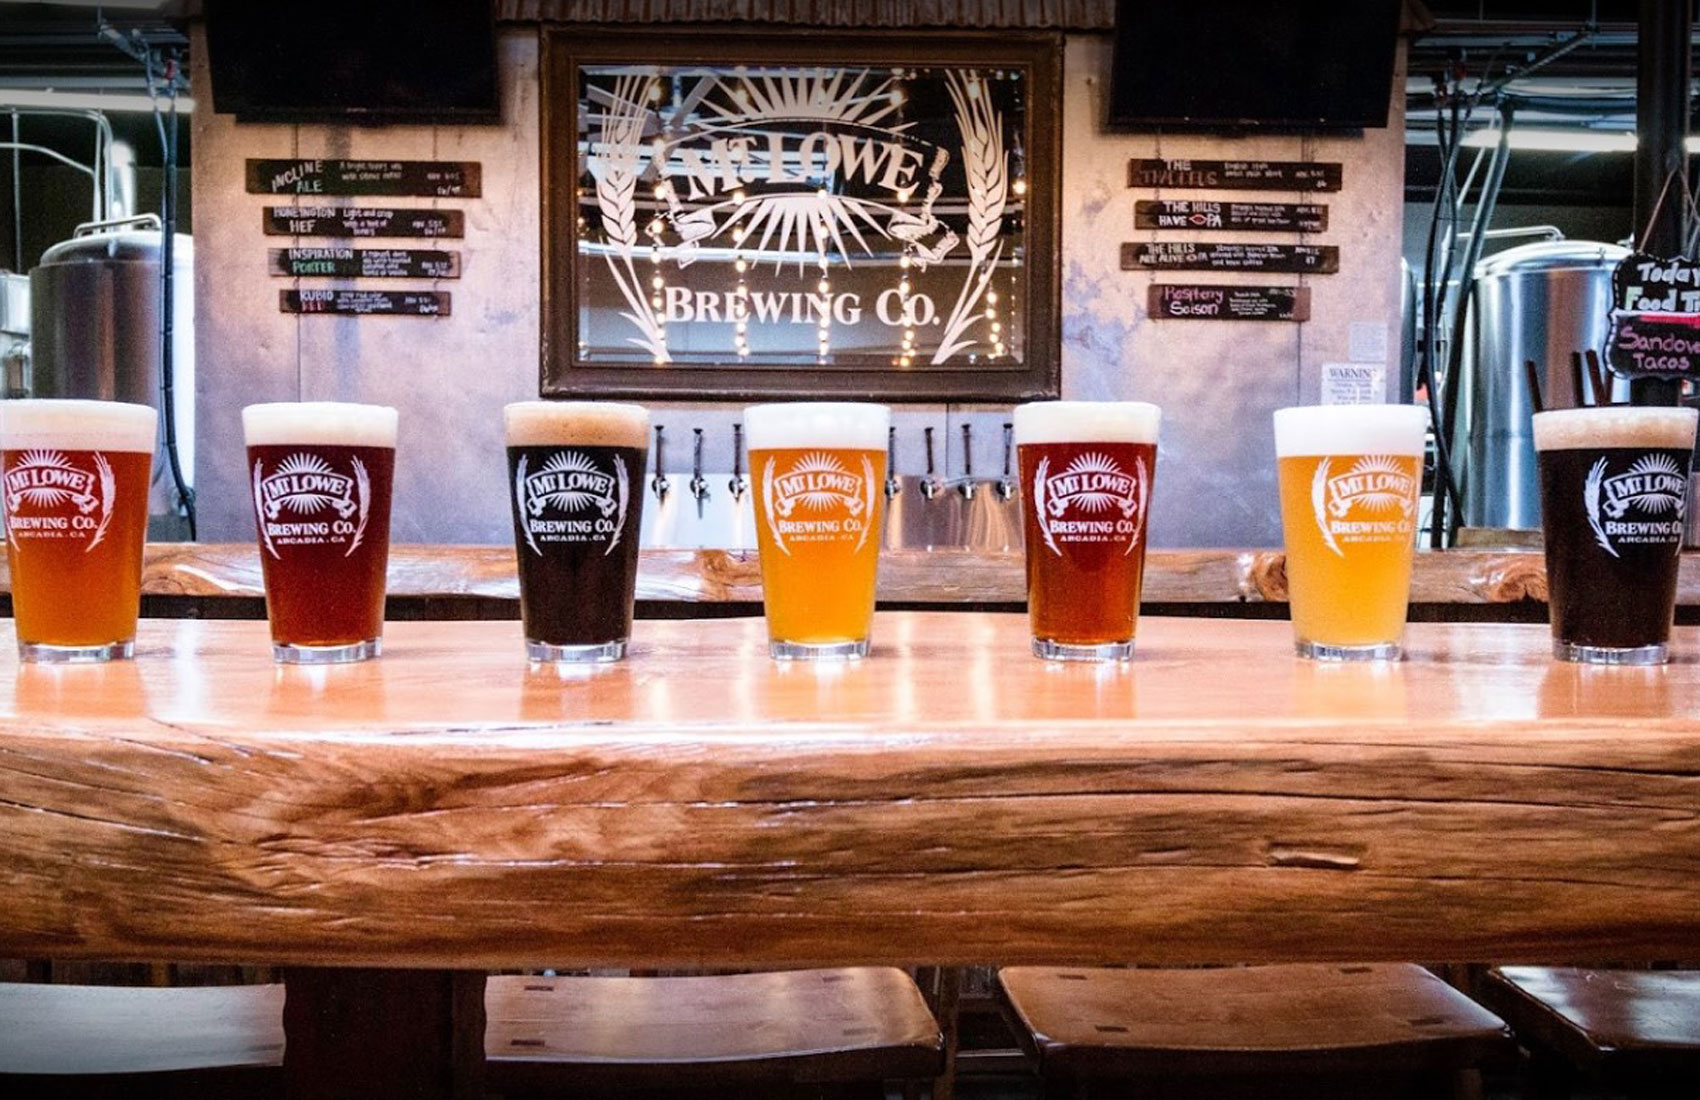 Different flavors of beer in glasses on a bar.